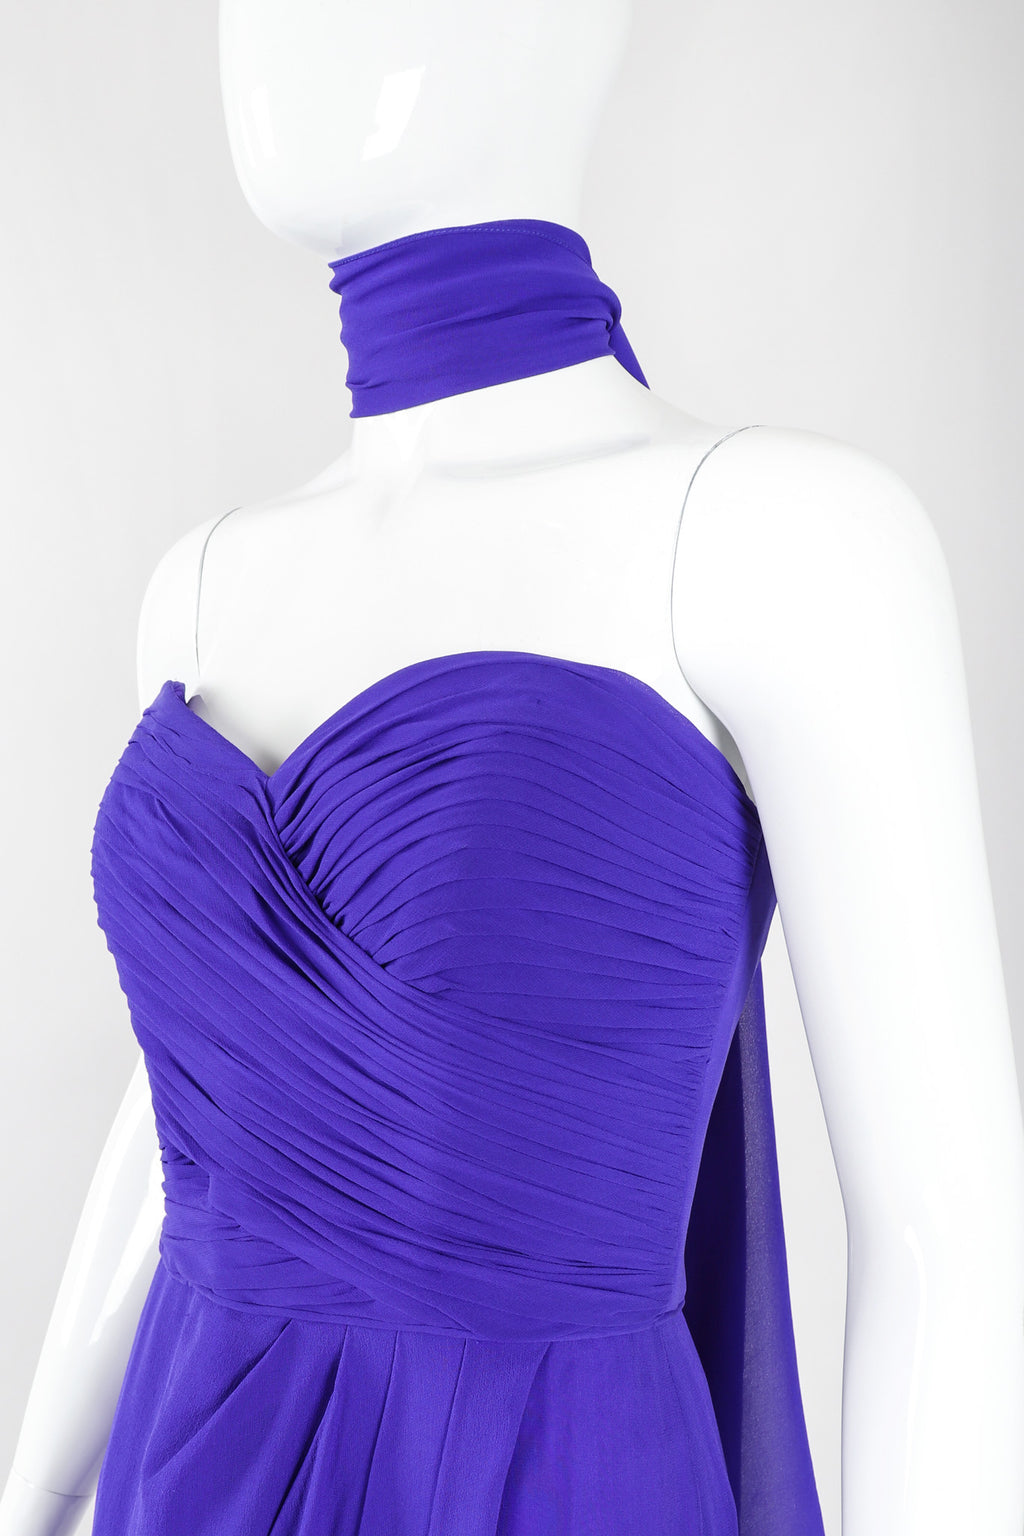 Recess Los Angeles Vintage Lillie Rubin Electric Purple Silk Chiffon Strapless Sheath